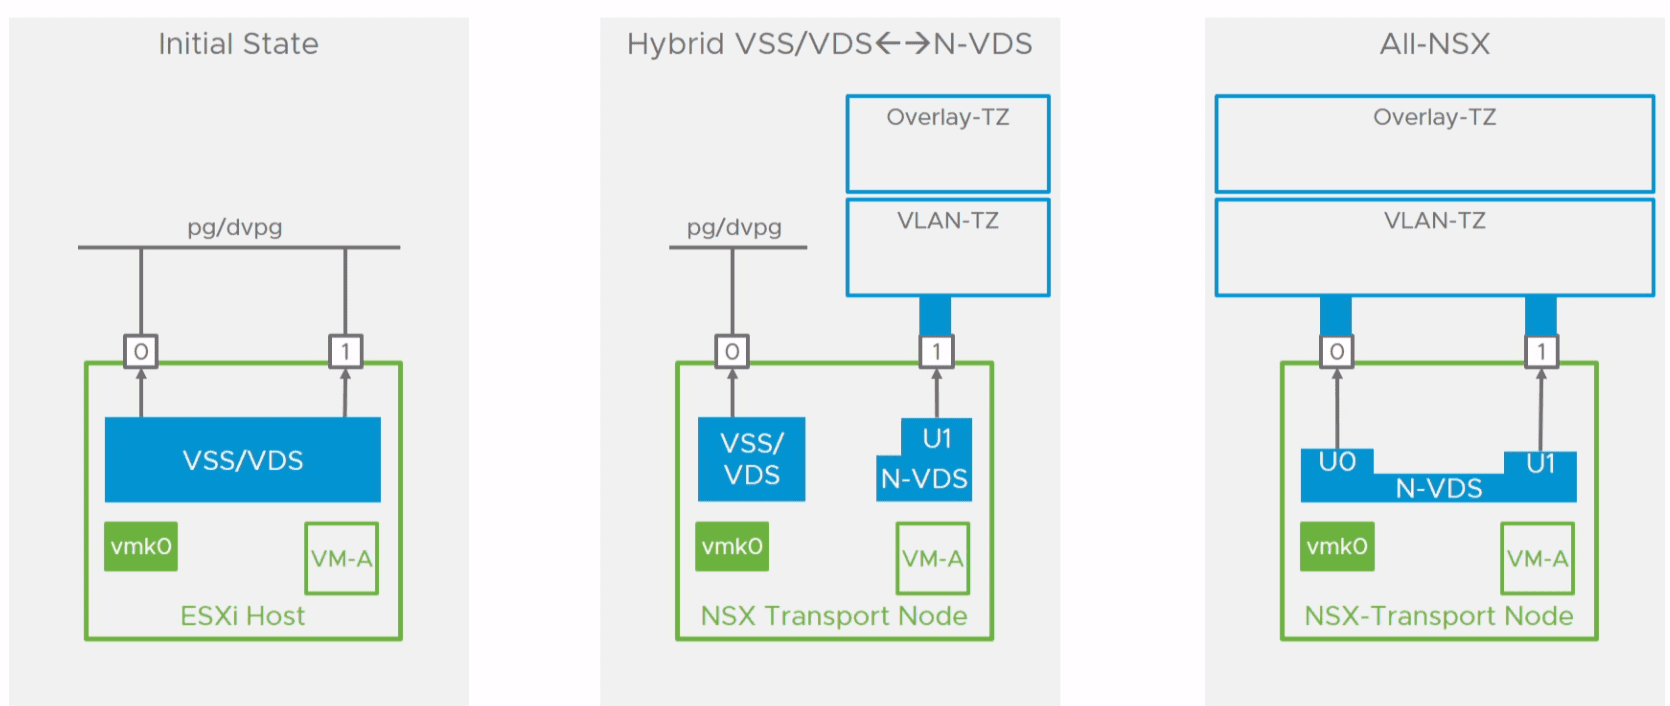 Migration-process-overview-from-VSS-VDS-to-N-VDS